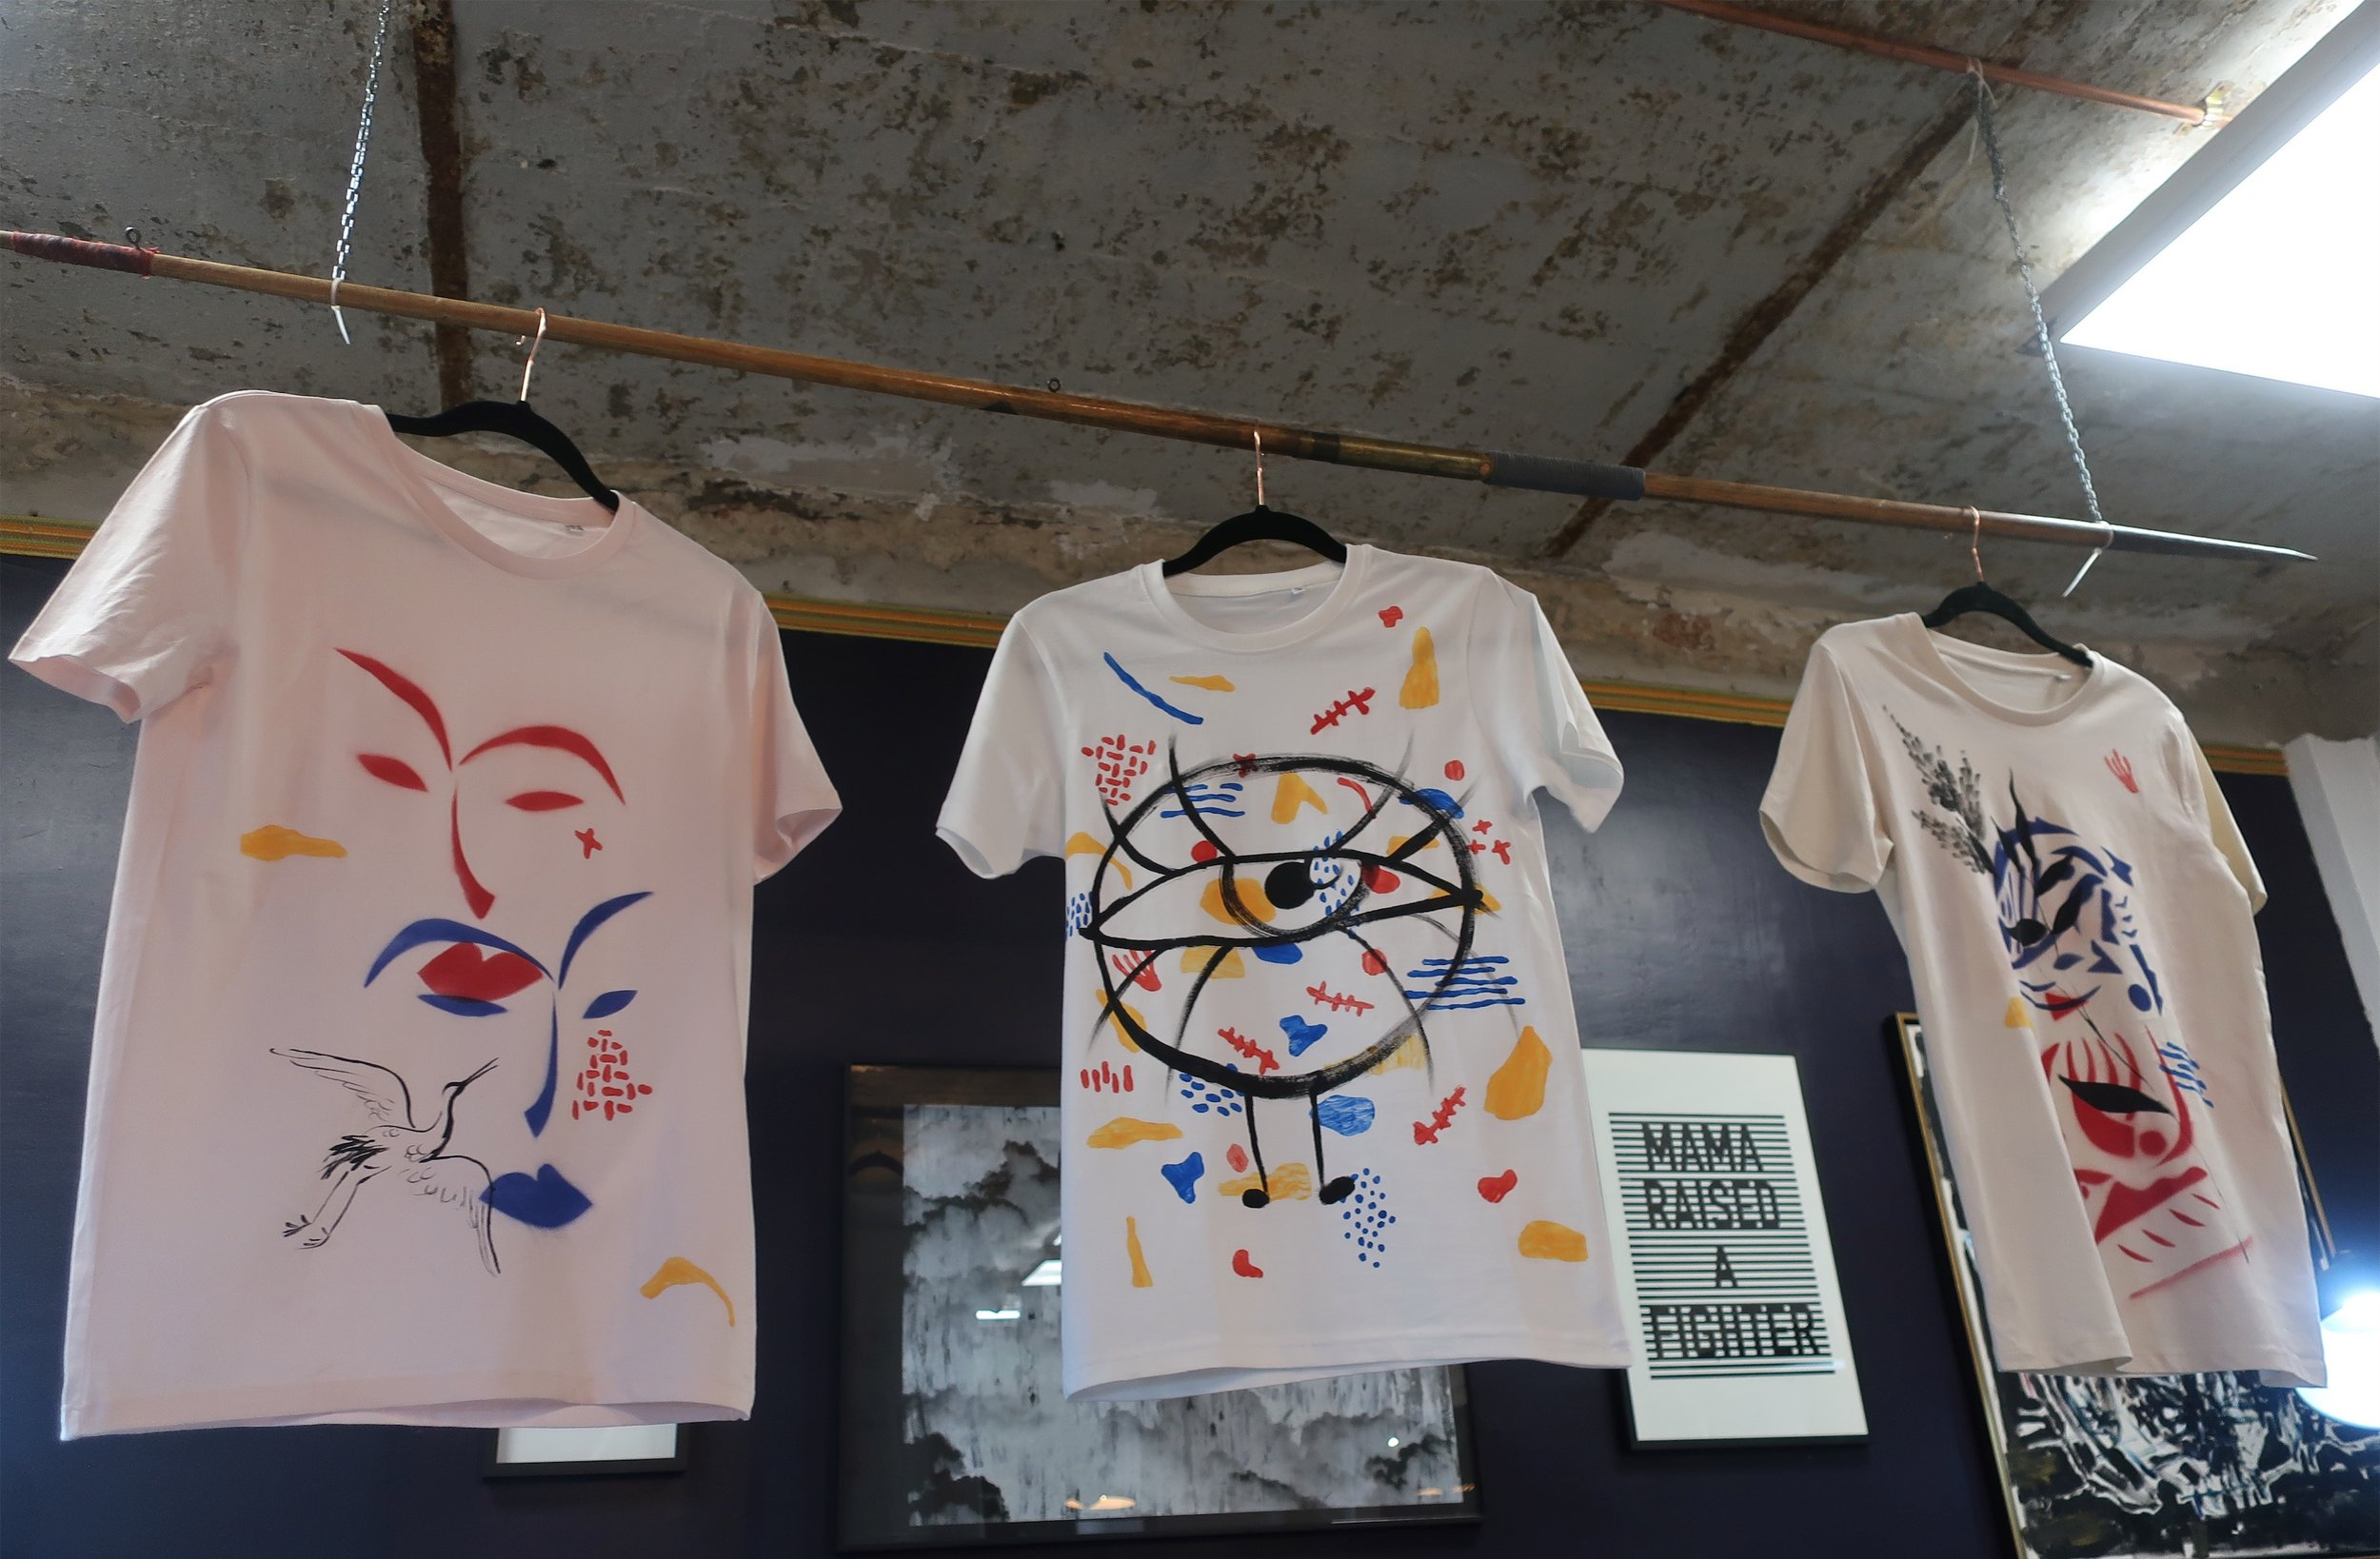 Collaborative hand customised tshirts by Salut Manu, Adria Deyza and Alba Rey.jpeg